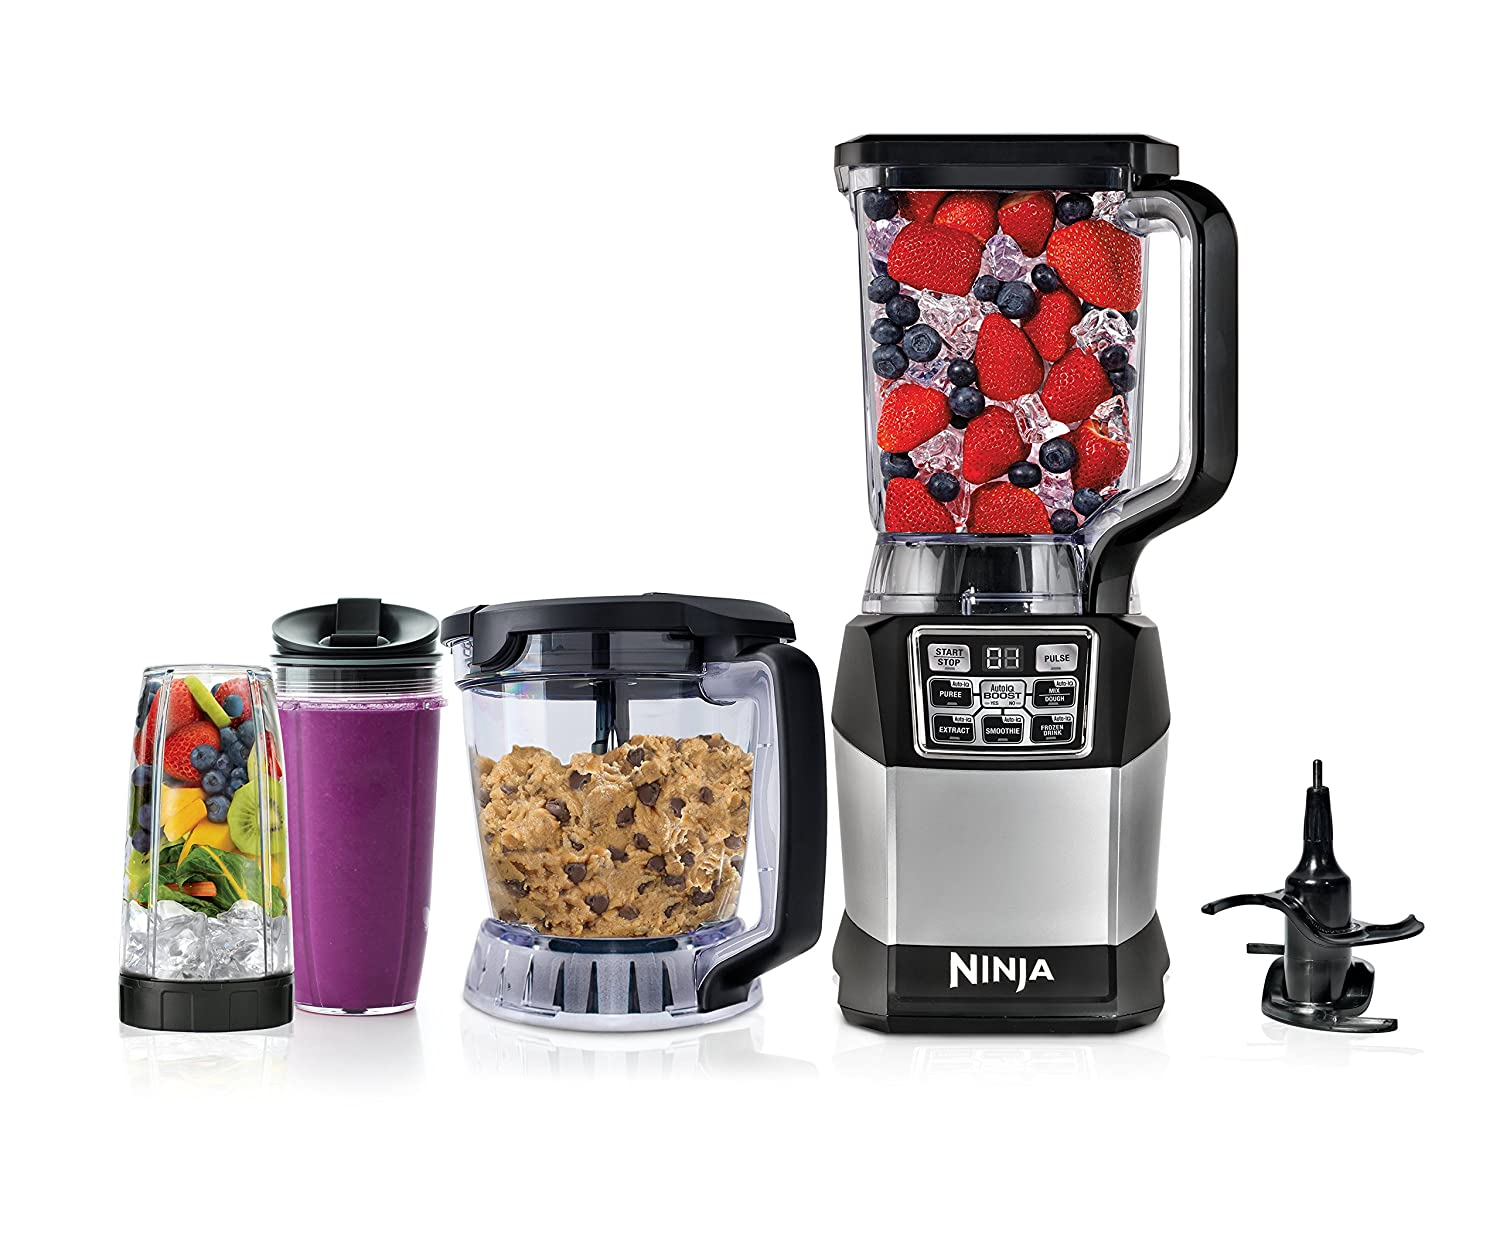 amazoncom ninja blender and food processor system with 1200 watt auto iq base 72oz pitcher 40oz blend prep bowl dough tool and 2 24oz cups with - Ninja Kitchen System